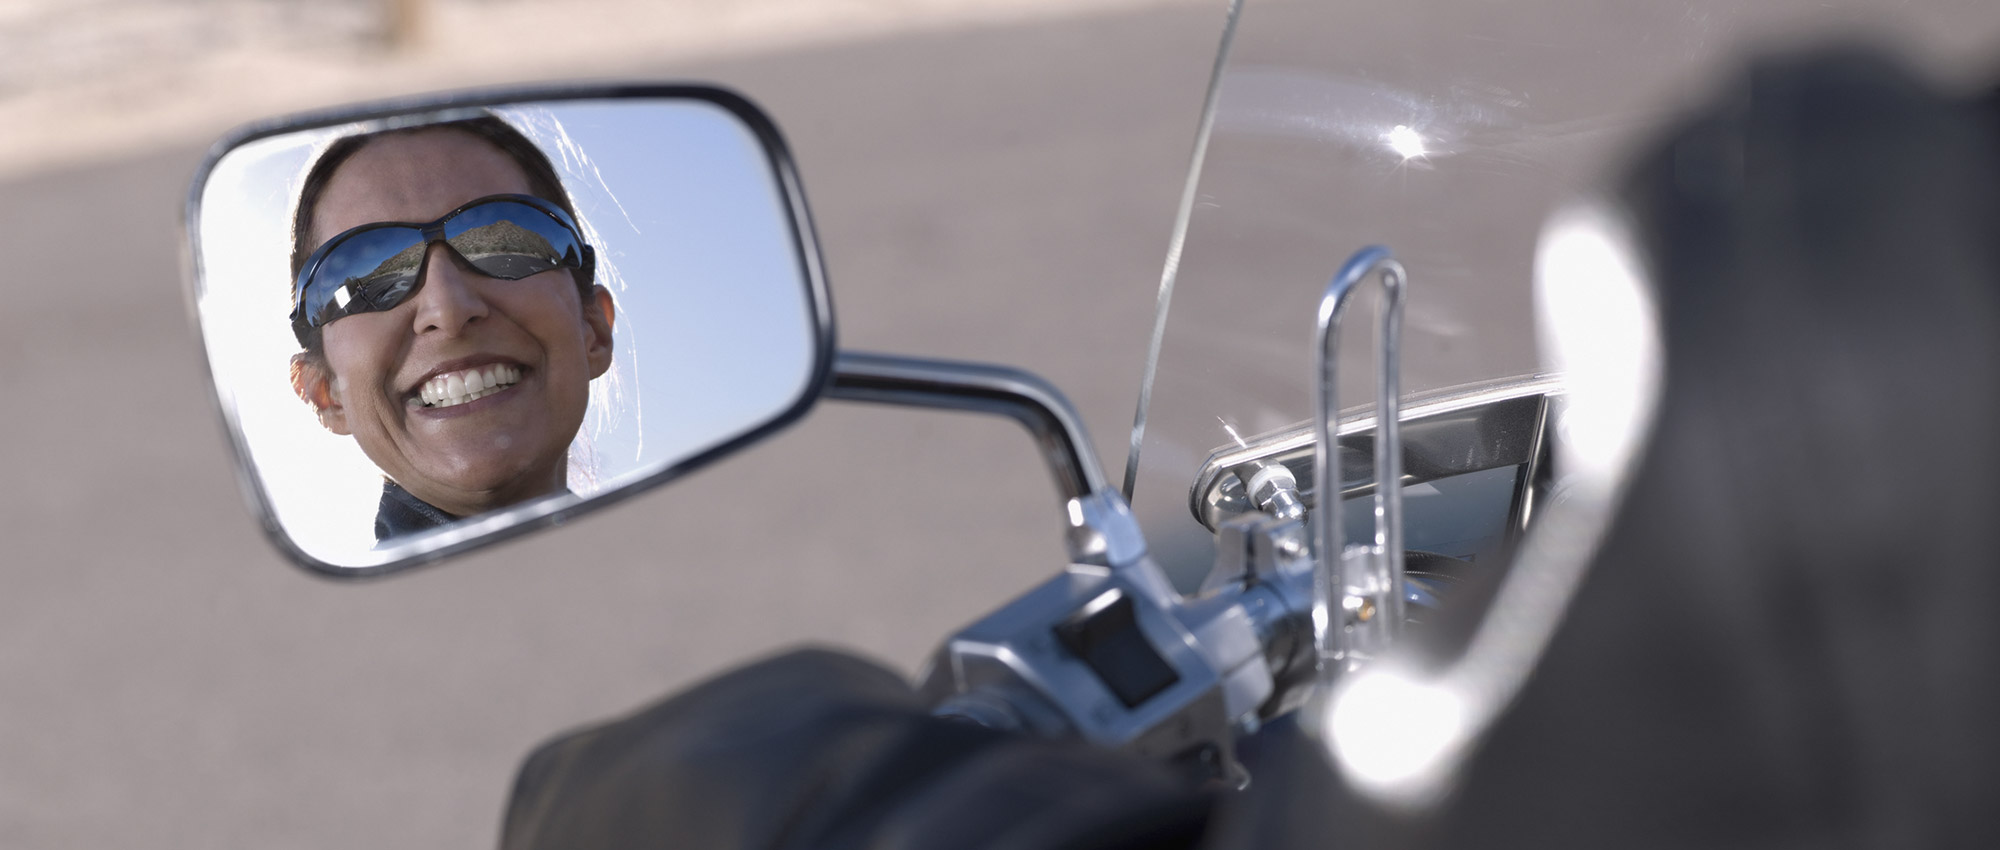 Do you and your team have a clear view of the future, or is everyone still looking in the rear view mirror?